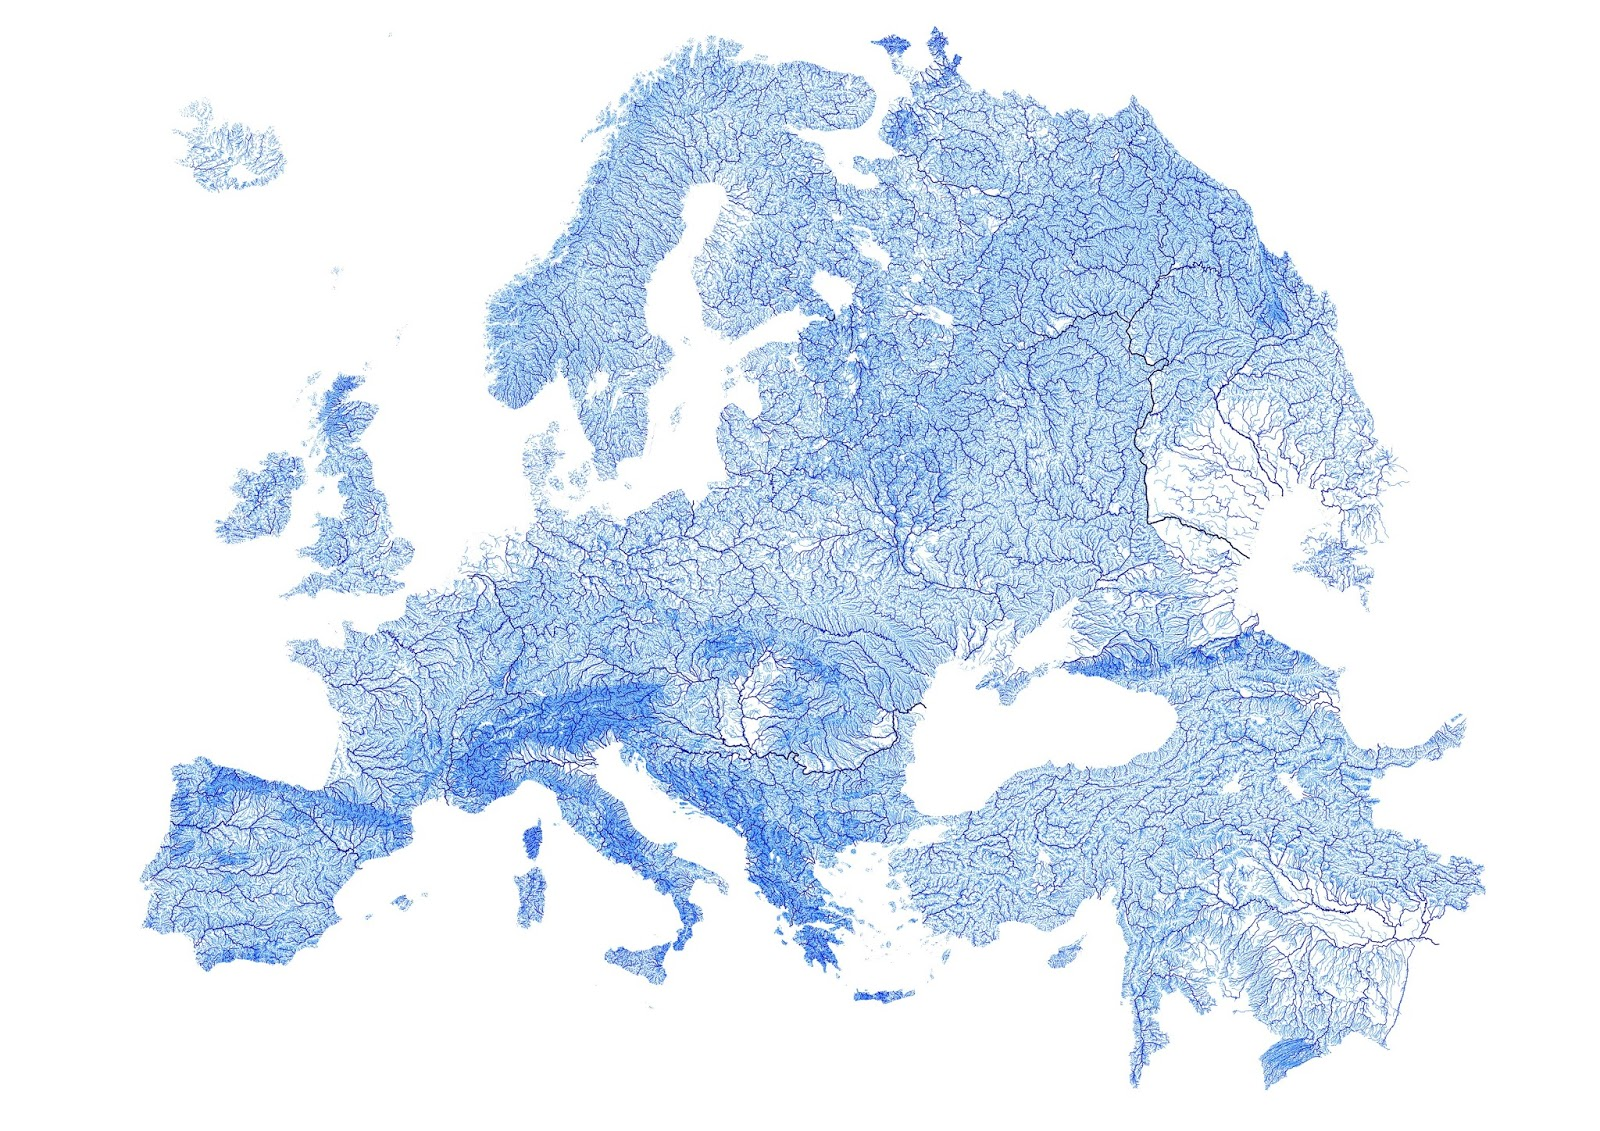 Europe plotted by every mapped stream and river